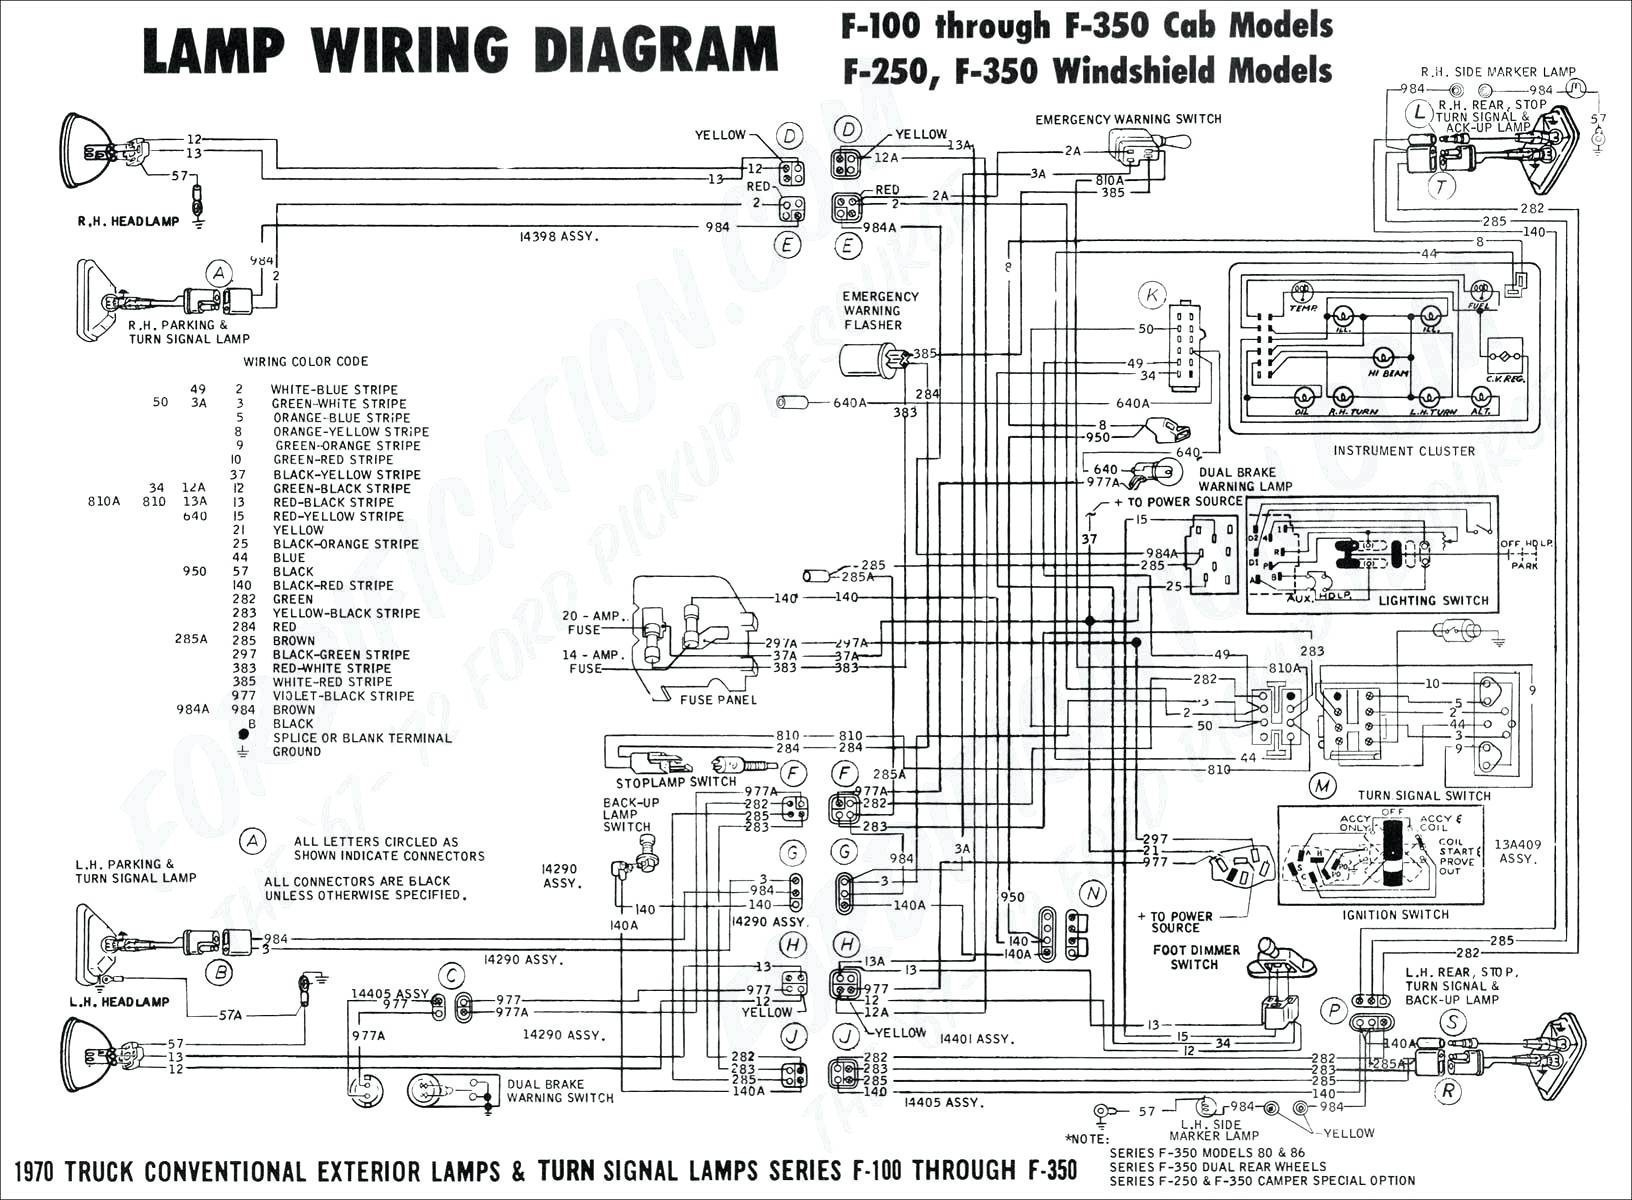 1996 dodge ram 1500 fuel pump wiring diagram Collection-1996 Dodge Ram 1500 Fuel Pump Wiring Diagram Refrence 1996 Dodge Ram 1500 Wiring Diagram Wiring 10-g